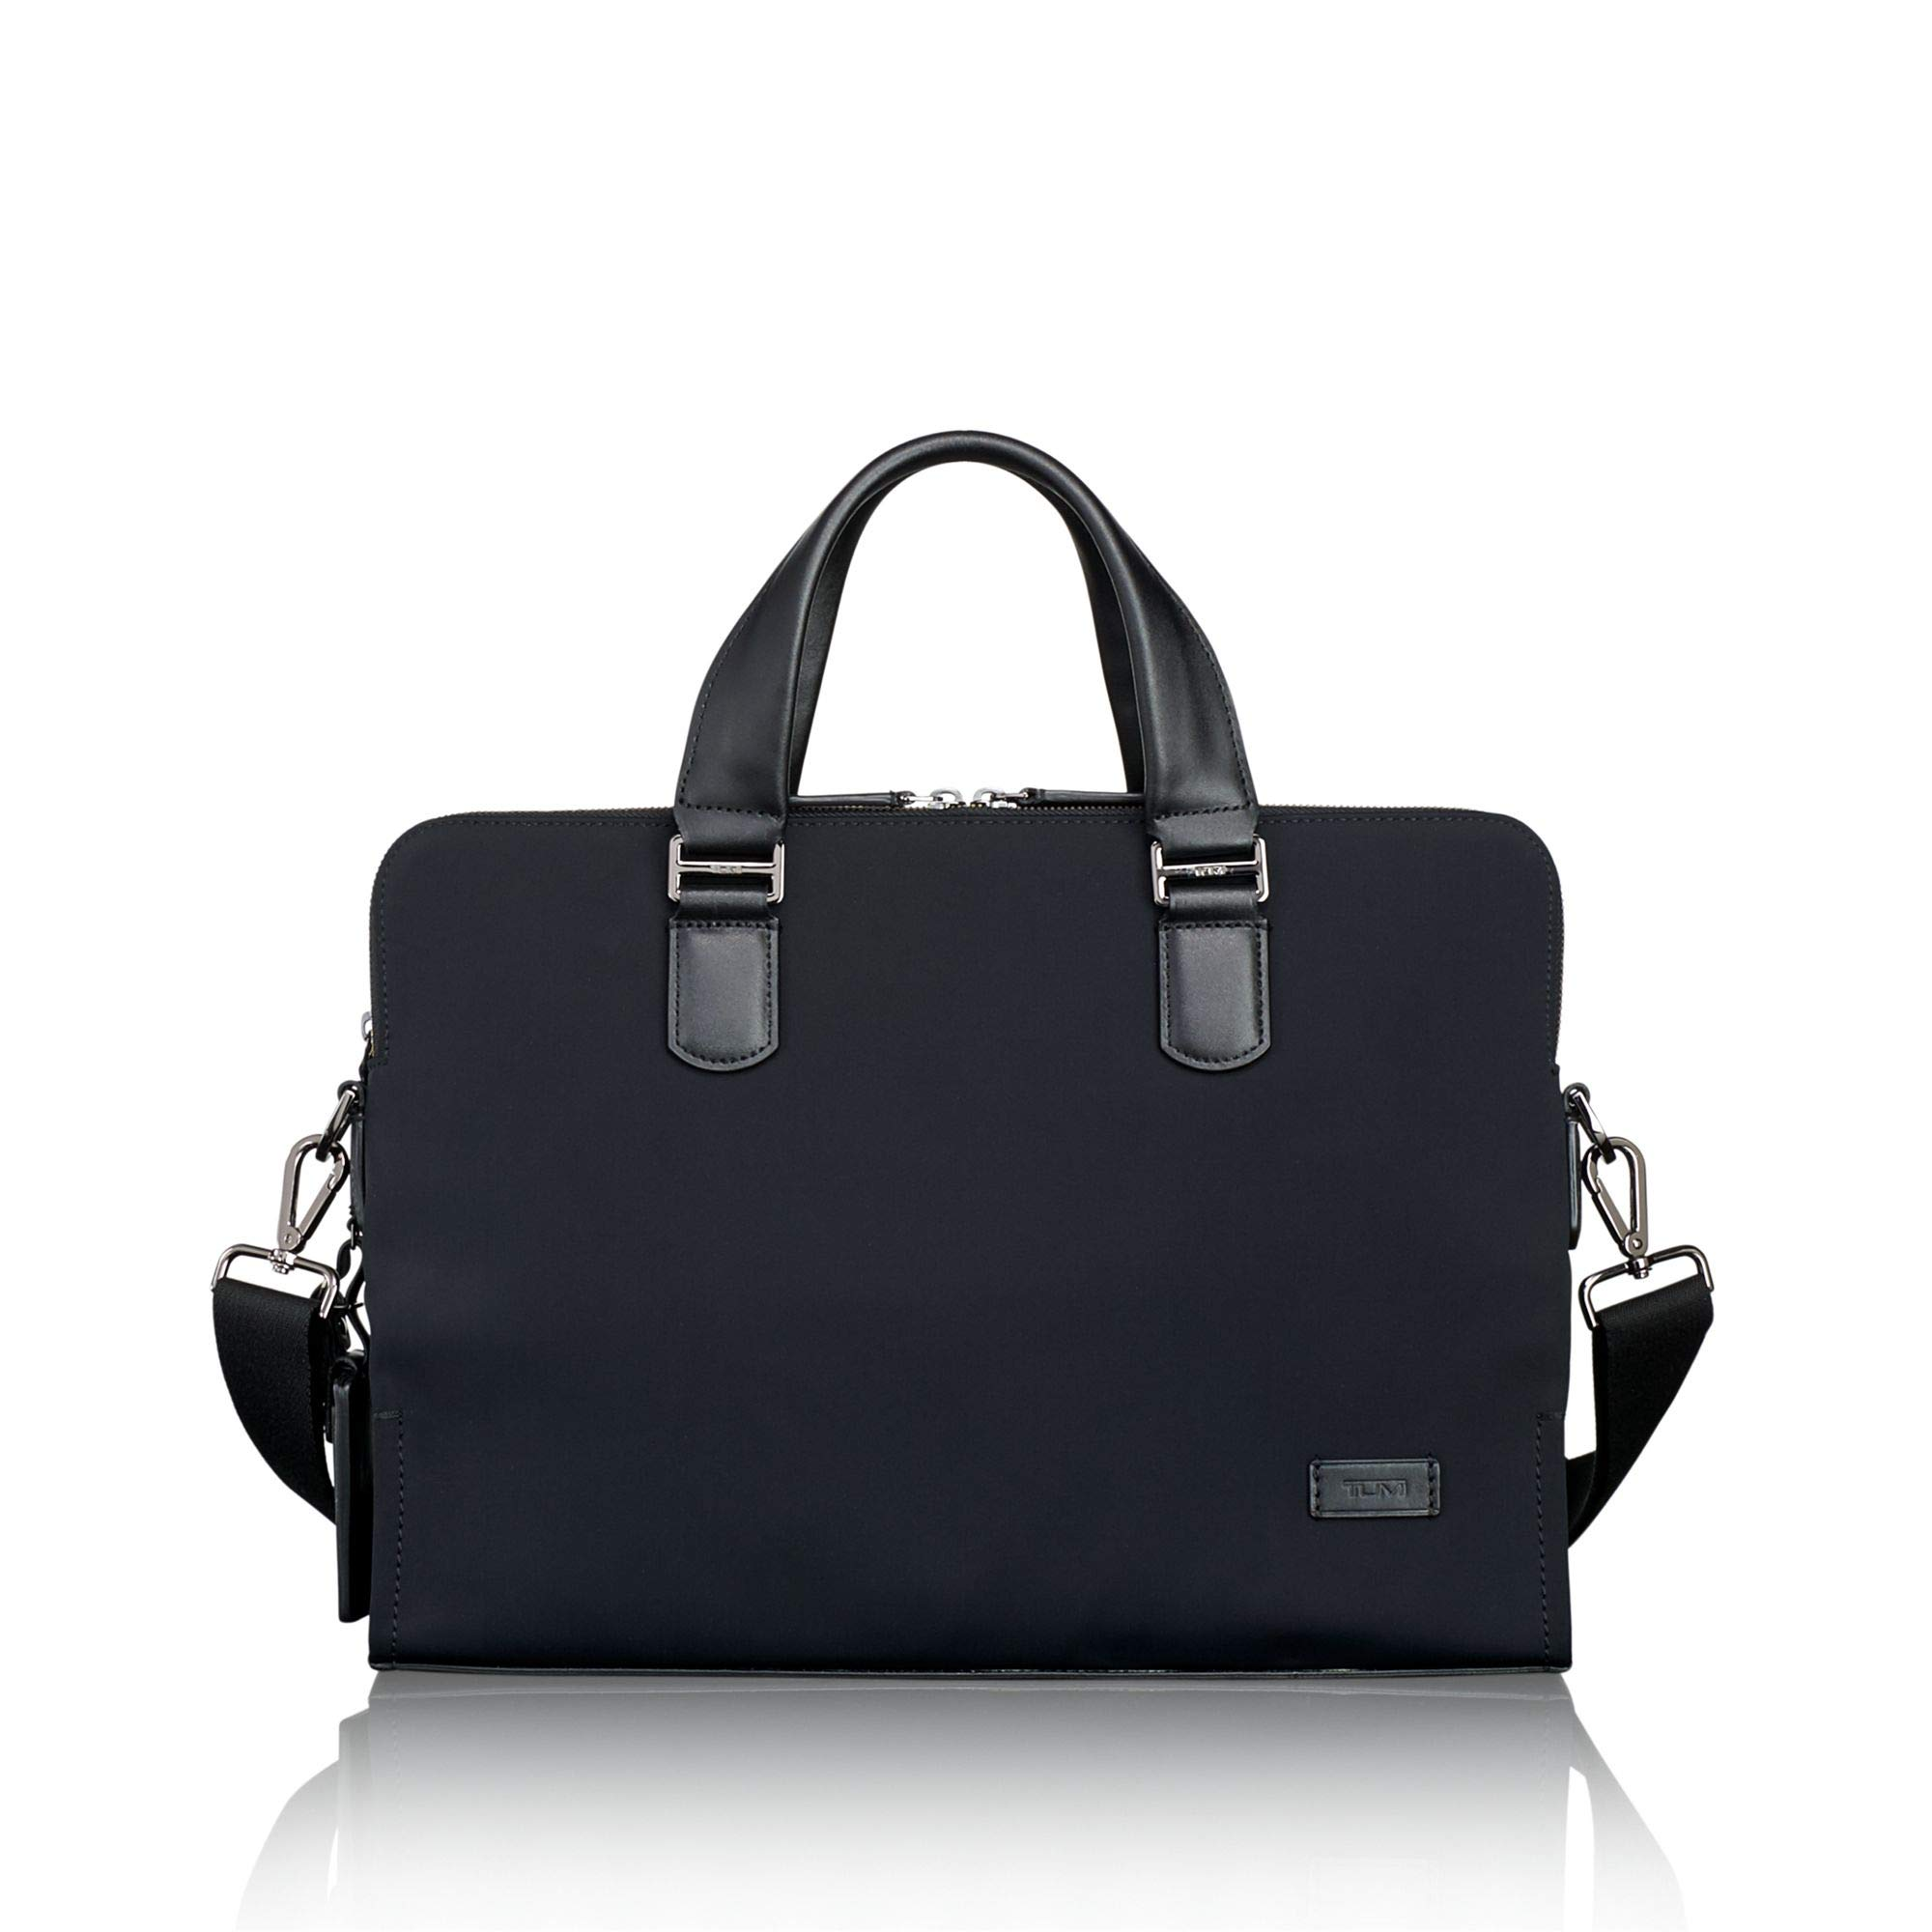 TUMI - Harrison Seneca Laptop Slim Brief Briefcase - 15 Inch Computer Backpack for Men and Women - Black by TUMI